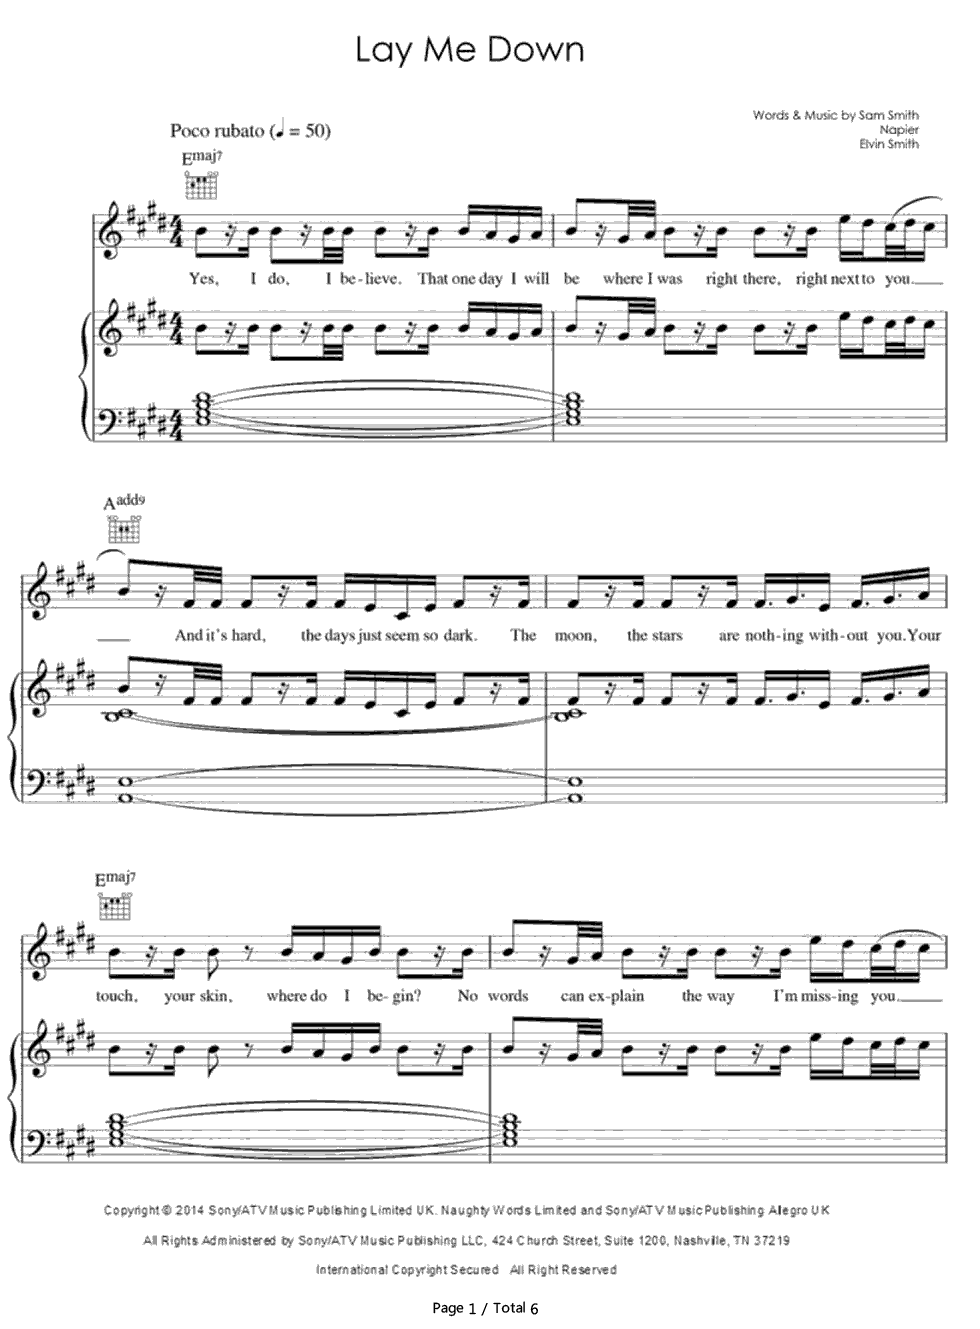 Lay me down sam smith stave preview 1 free piano sheet music listen now print sheet lay me down sam smith stave preview 1 hexwebz Choice Image